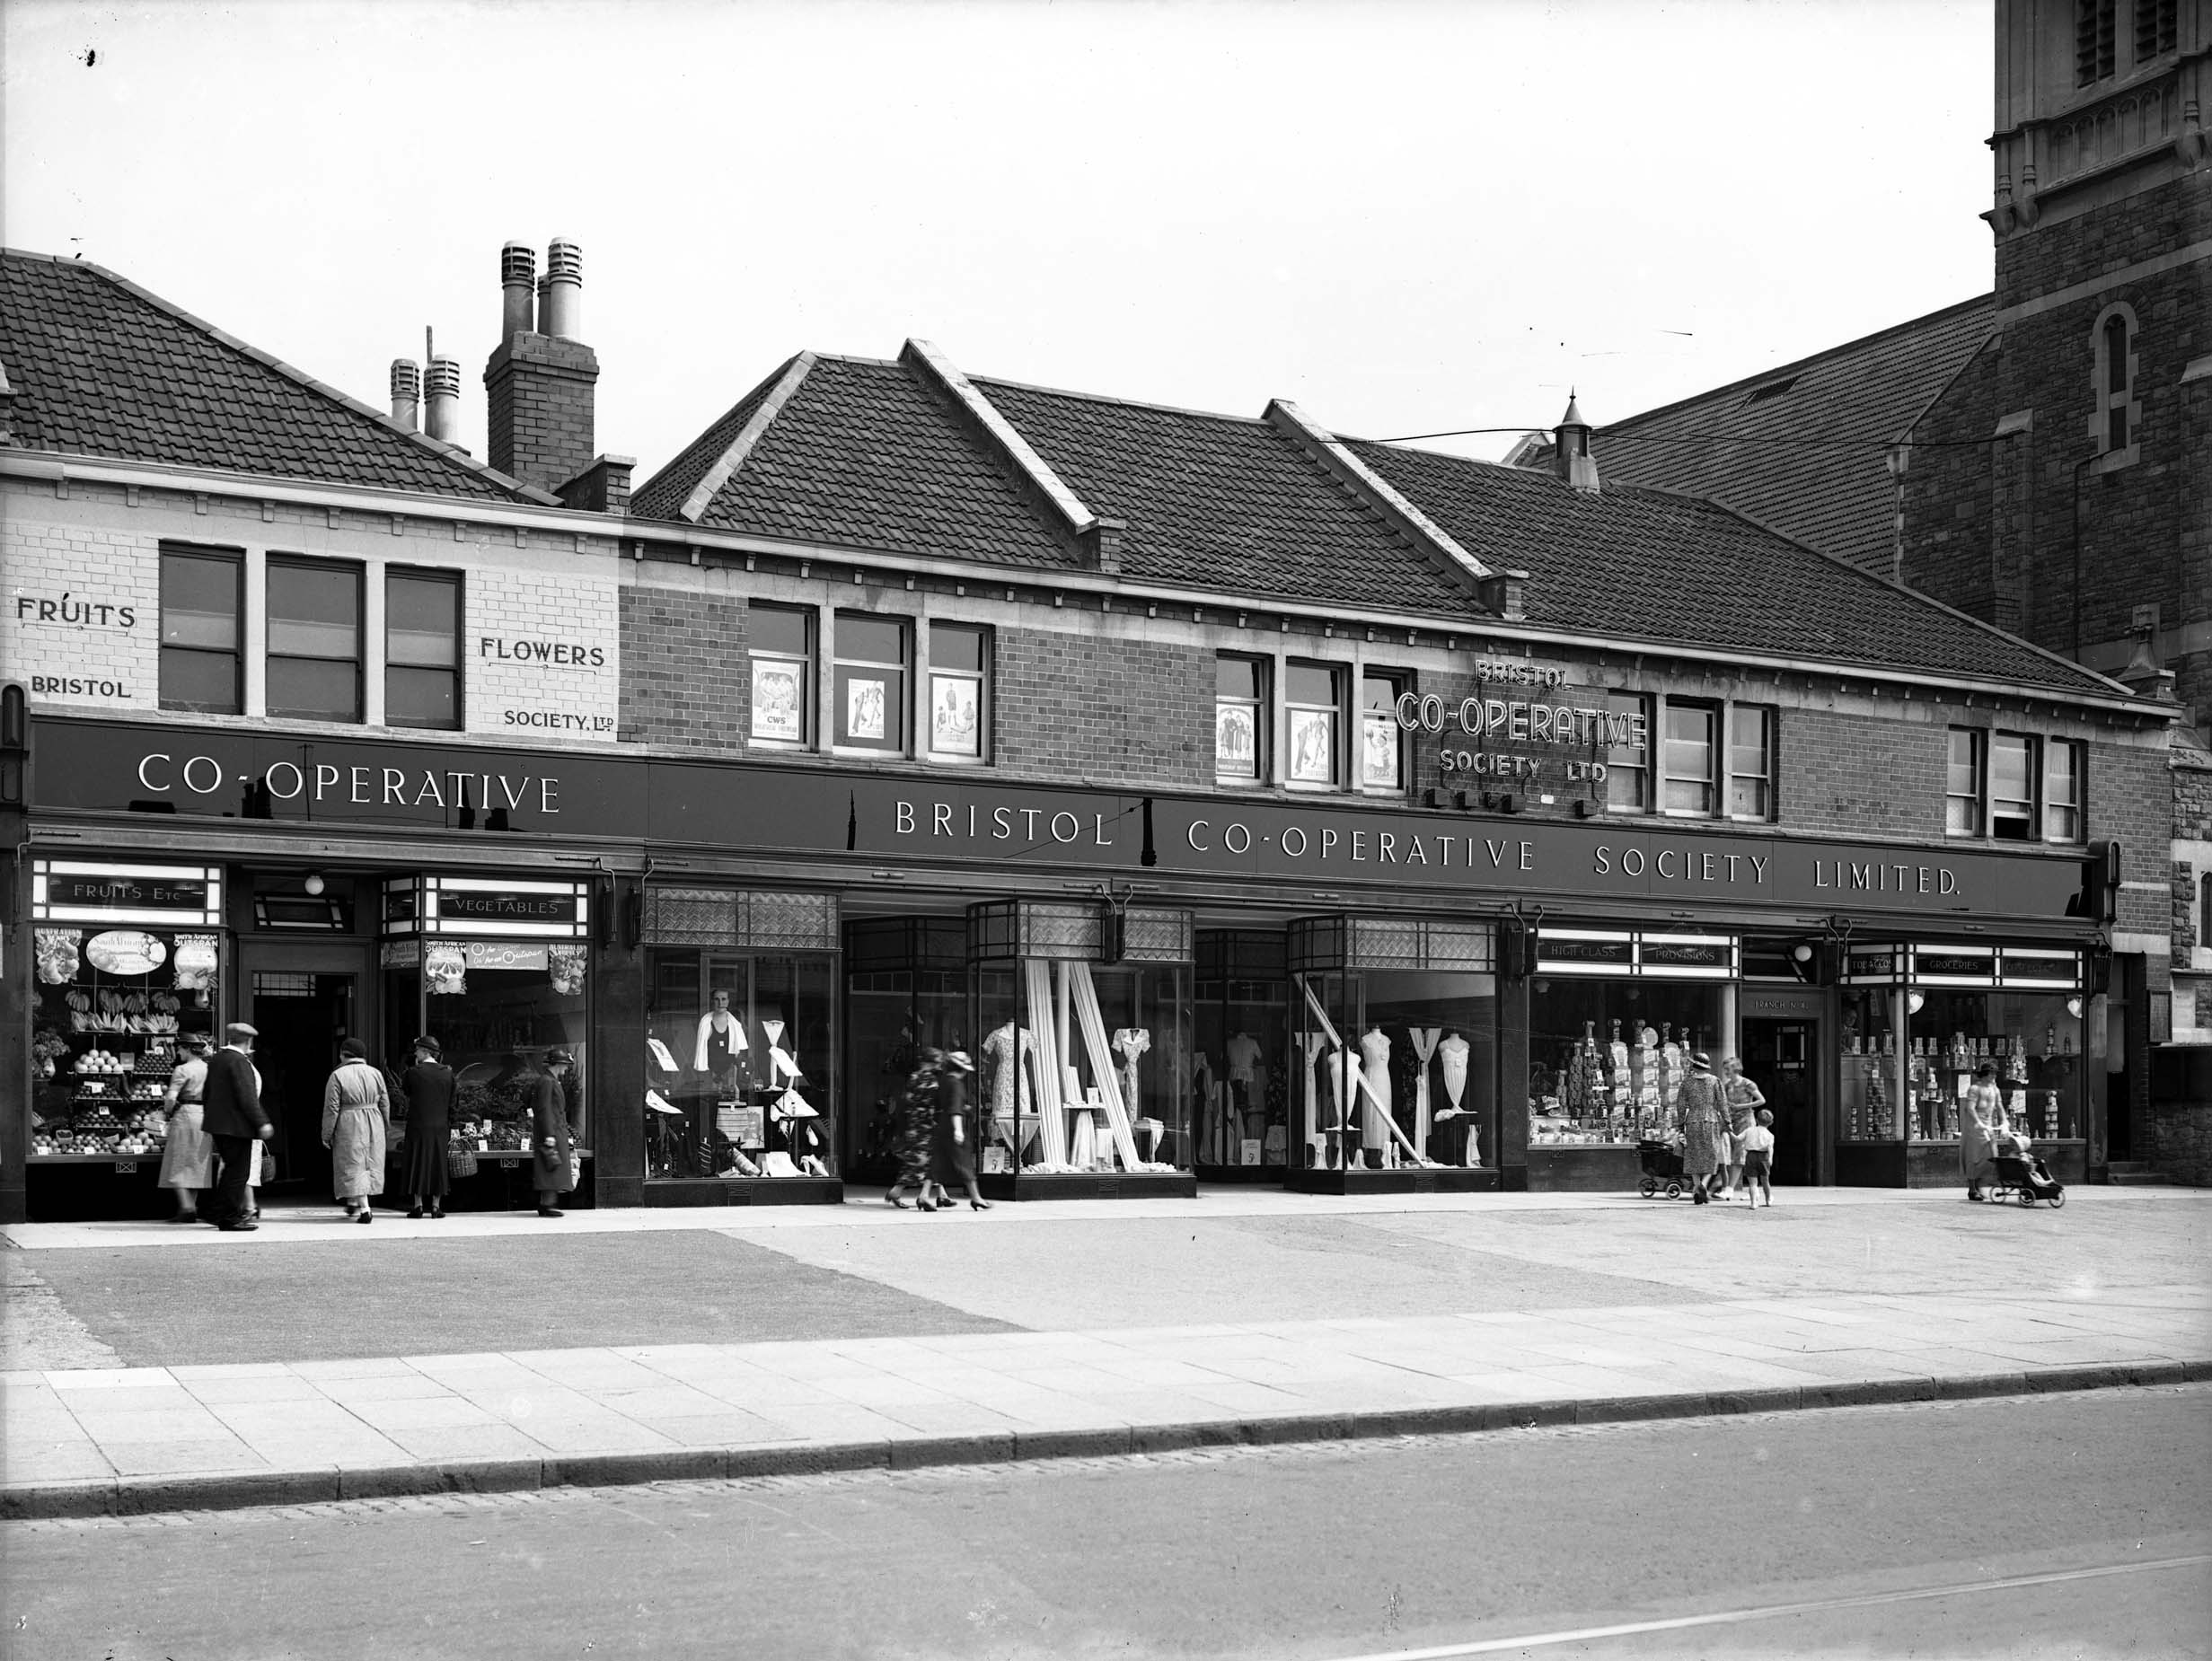 281, Gloucester Road dated 1932 from KnowYourPlace